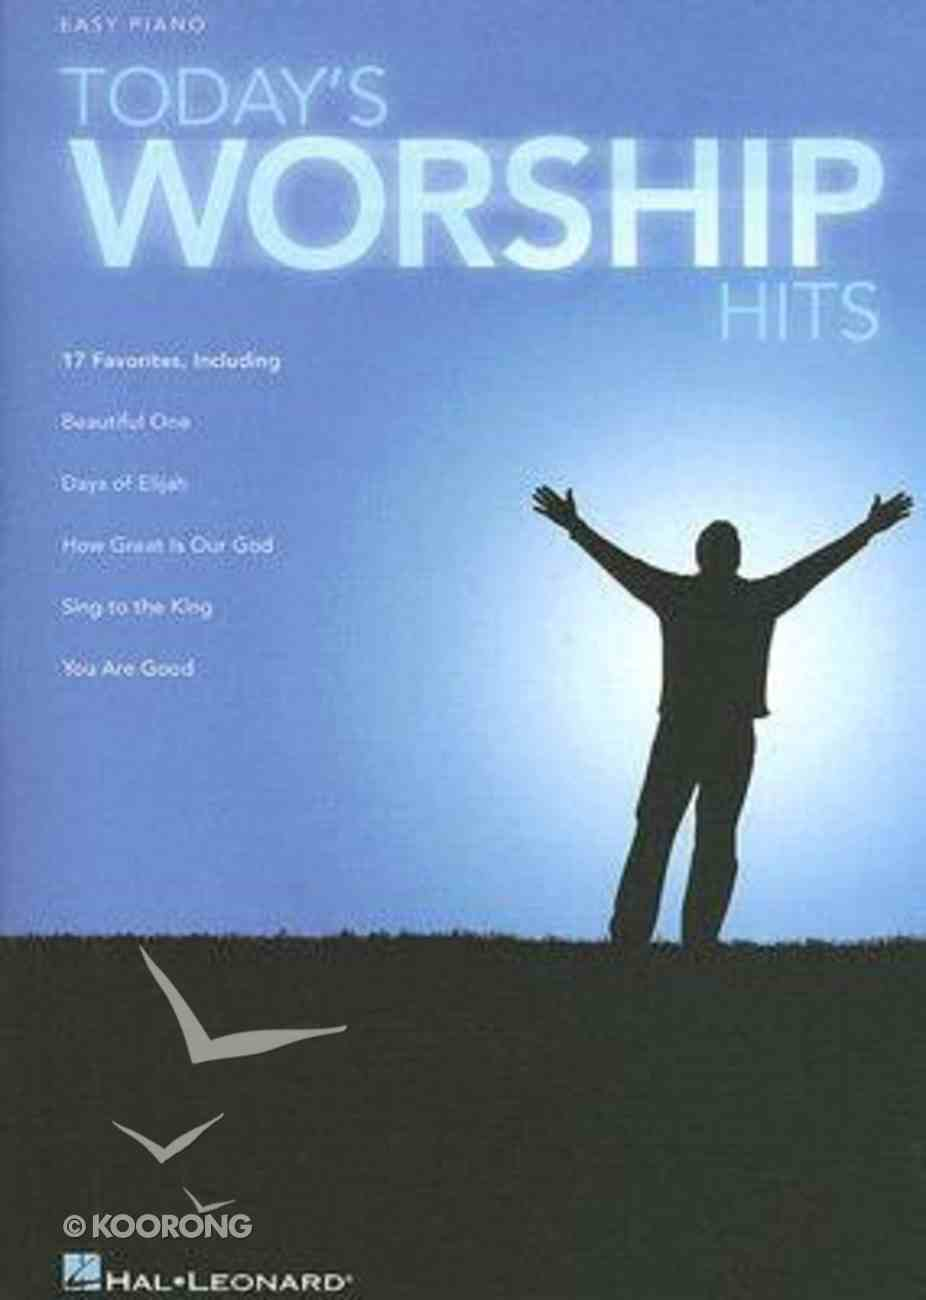 Today's Worship Hits Music Book Paperback